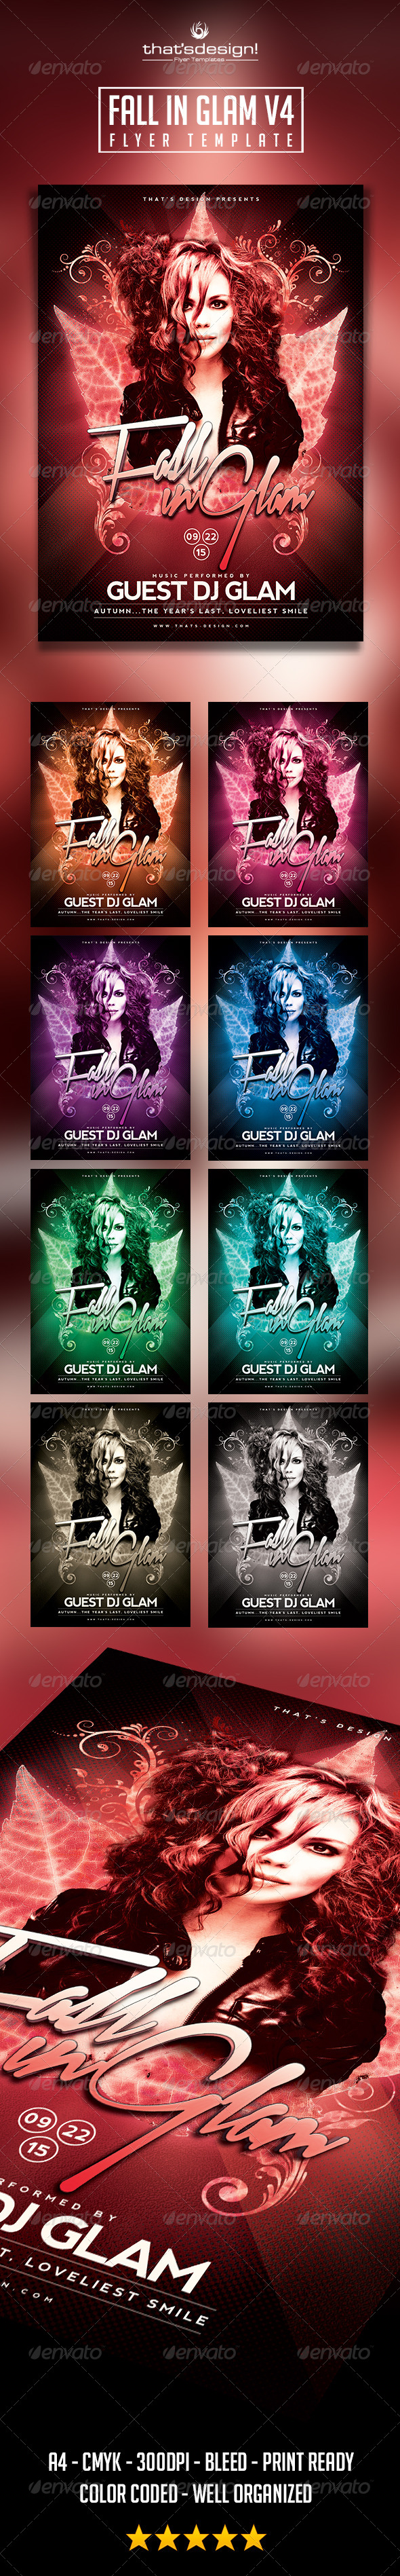 GraphicRiver Fall in Glam Flyer Template V4 8676743